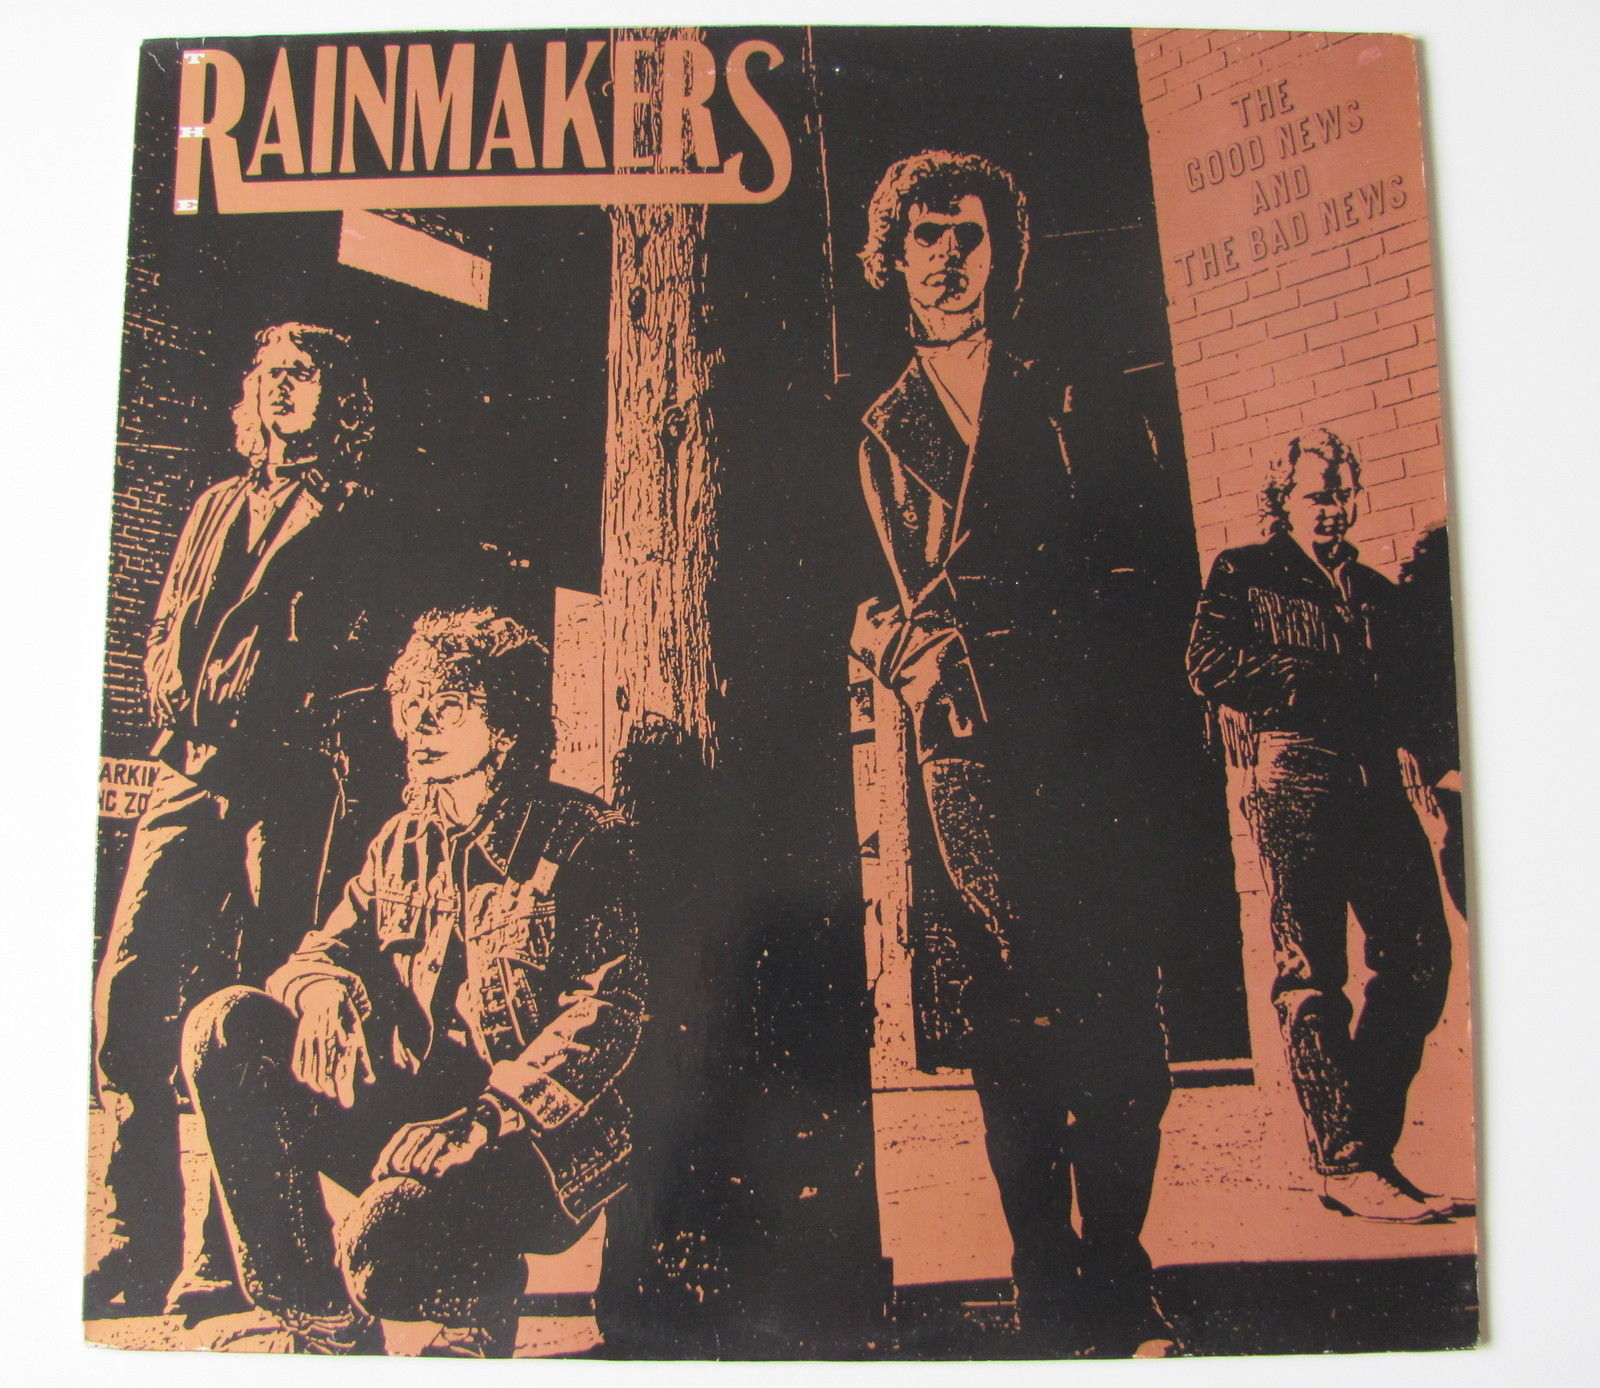 THE RAINMAKERS...THE GOOD NEWS AND THE DAB NEWS..... LP